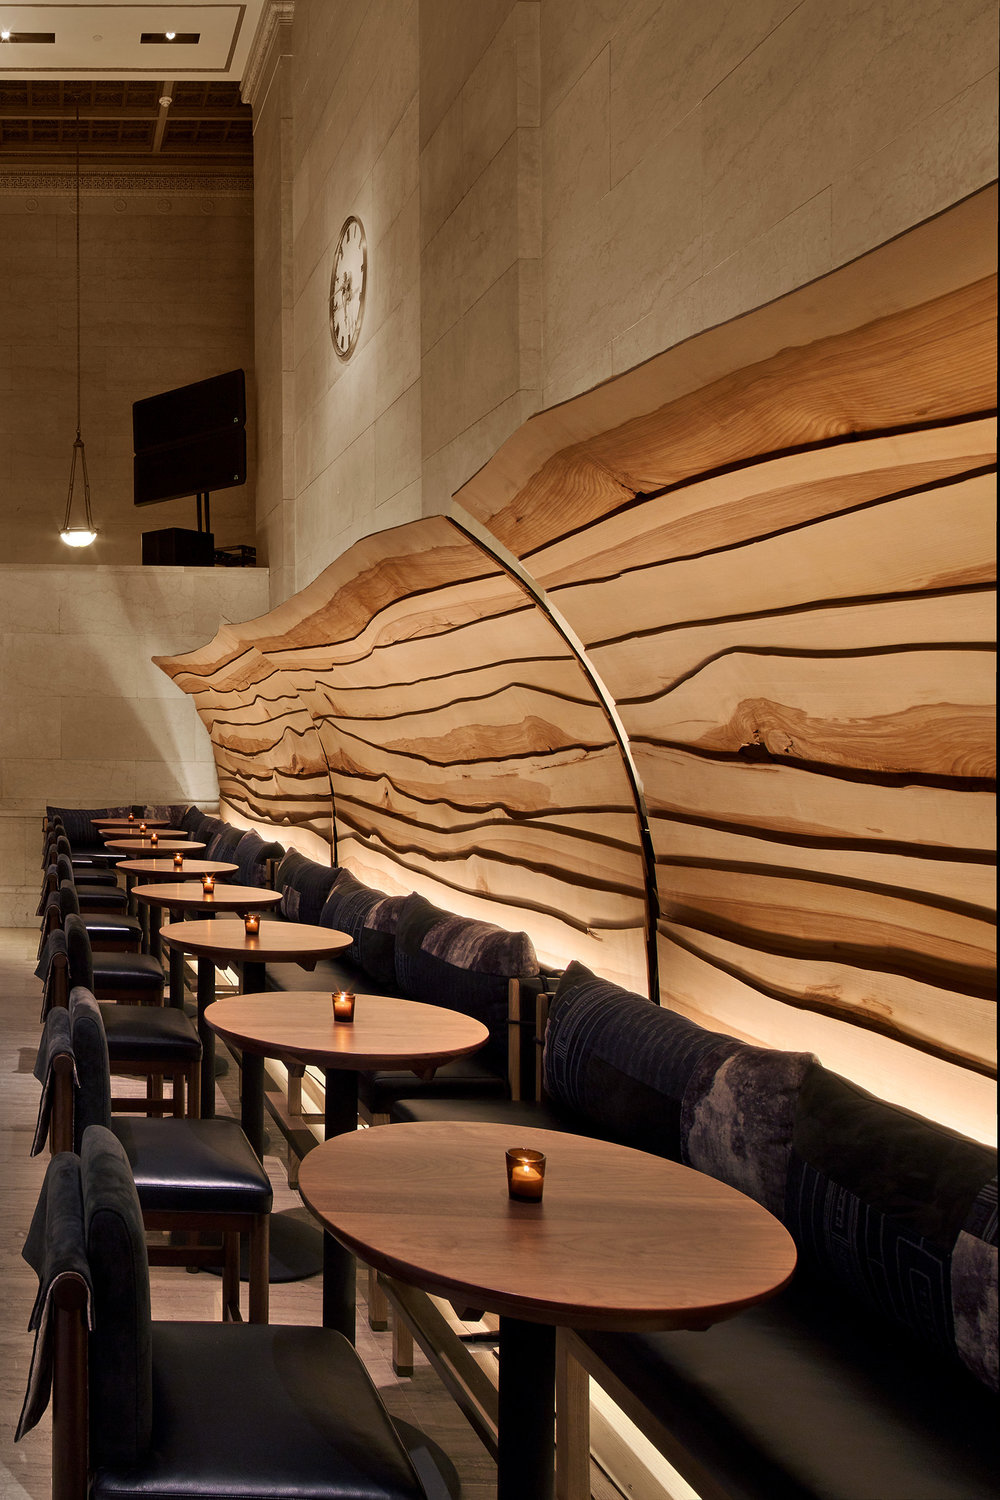 "Nobu Downtown   Project opening: 2017 | Completed at Rockwell Group | Role: Interior Designer               96                Normal     0                     false     false     false         EN-US     X-NONE     X-NONE                                                                                                                                                                                                                                                                                                                                                                                                                                                                                                                                                                                                                                                                                                                                                                                                                                                                                                                                                                                                                                                                                                                                                                                                                                                                                                                                                                                                                                                                                                                                                                                                                                                                                                                                 /* Style Definitions */ table.MsoNormalTable 	{mso-style-name:""Table Normal""; 	mso-tstyle-rowband-size:0; 	mso-tstyle-colband-size:0; 	mso-style-noshow:yes; 	mso-style-priority:99; 	mso-style-parent:""""; 	mso-padding-alt:0in 5.4pt 0in 5.4pt; 	mso-para-margin:0in; 	mso-para-margin-bottom:.0001pt; 	mso-pagination:widow-orphan; 	font-size:12.0pt; 	font-family:Calibri; 	mso-ascii-font-family:Calibri; 	mso-ascii-theme-font:minor-latin; 	mso-hansi-font-family:Calibri; 	mso-hansi-theme-font:minor-latin;}     Laura played a leading role in the design of this 12,500-square-foot restaurant. The Rockwell Group design team was tasked with rethinking the 20 year old iconic New York flagship to bring it's brand and spirit into the interior landmarked beaux arts building where, on the lobby floor, no permanent construction could be done. Laura took as many opportunities as possible to specify sustainable finishes. FSC certified timber was used everywhere possible, walls in the downstairs space were coated with shikkui plaster, an air purifying Japanese finish made from finely ground upcycled eggshells. Chairs from the old restaurant were reused and reupholstered in bright colors nodding to Nobu's Peruvian fusion culinary heritage.    Award:  Interior Design NYCxDESIGN: BEST RESTAURANT 2017   All photo credit to Eric Laingel Photography."